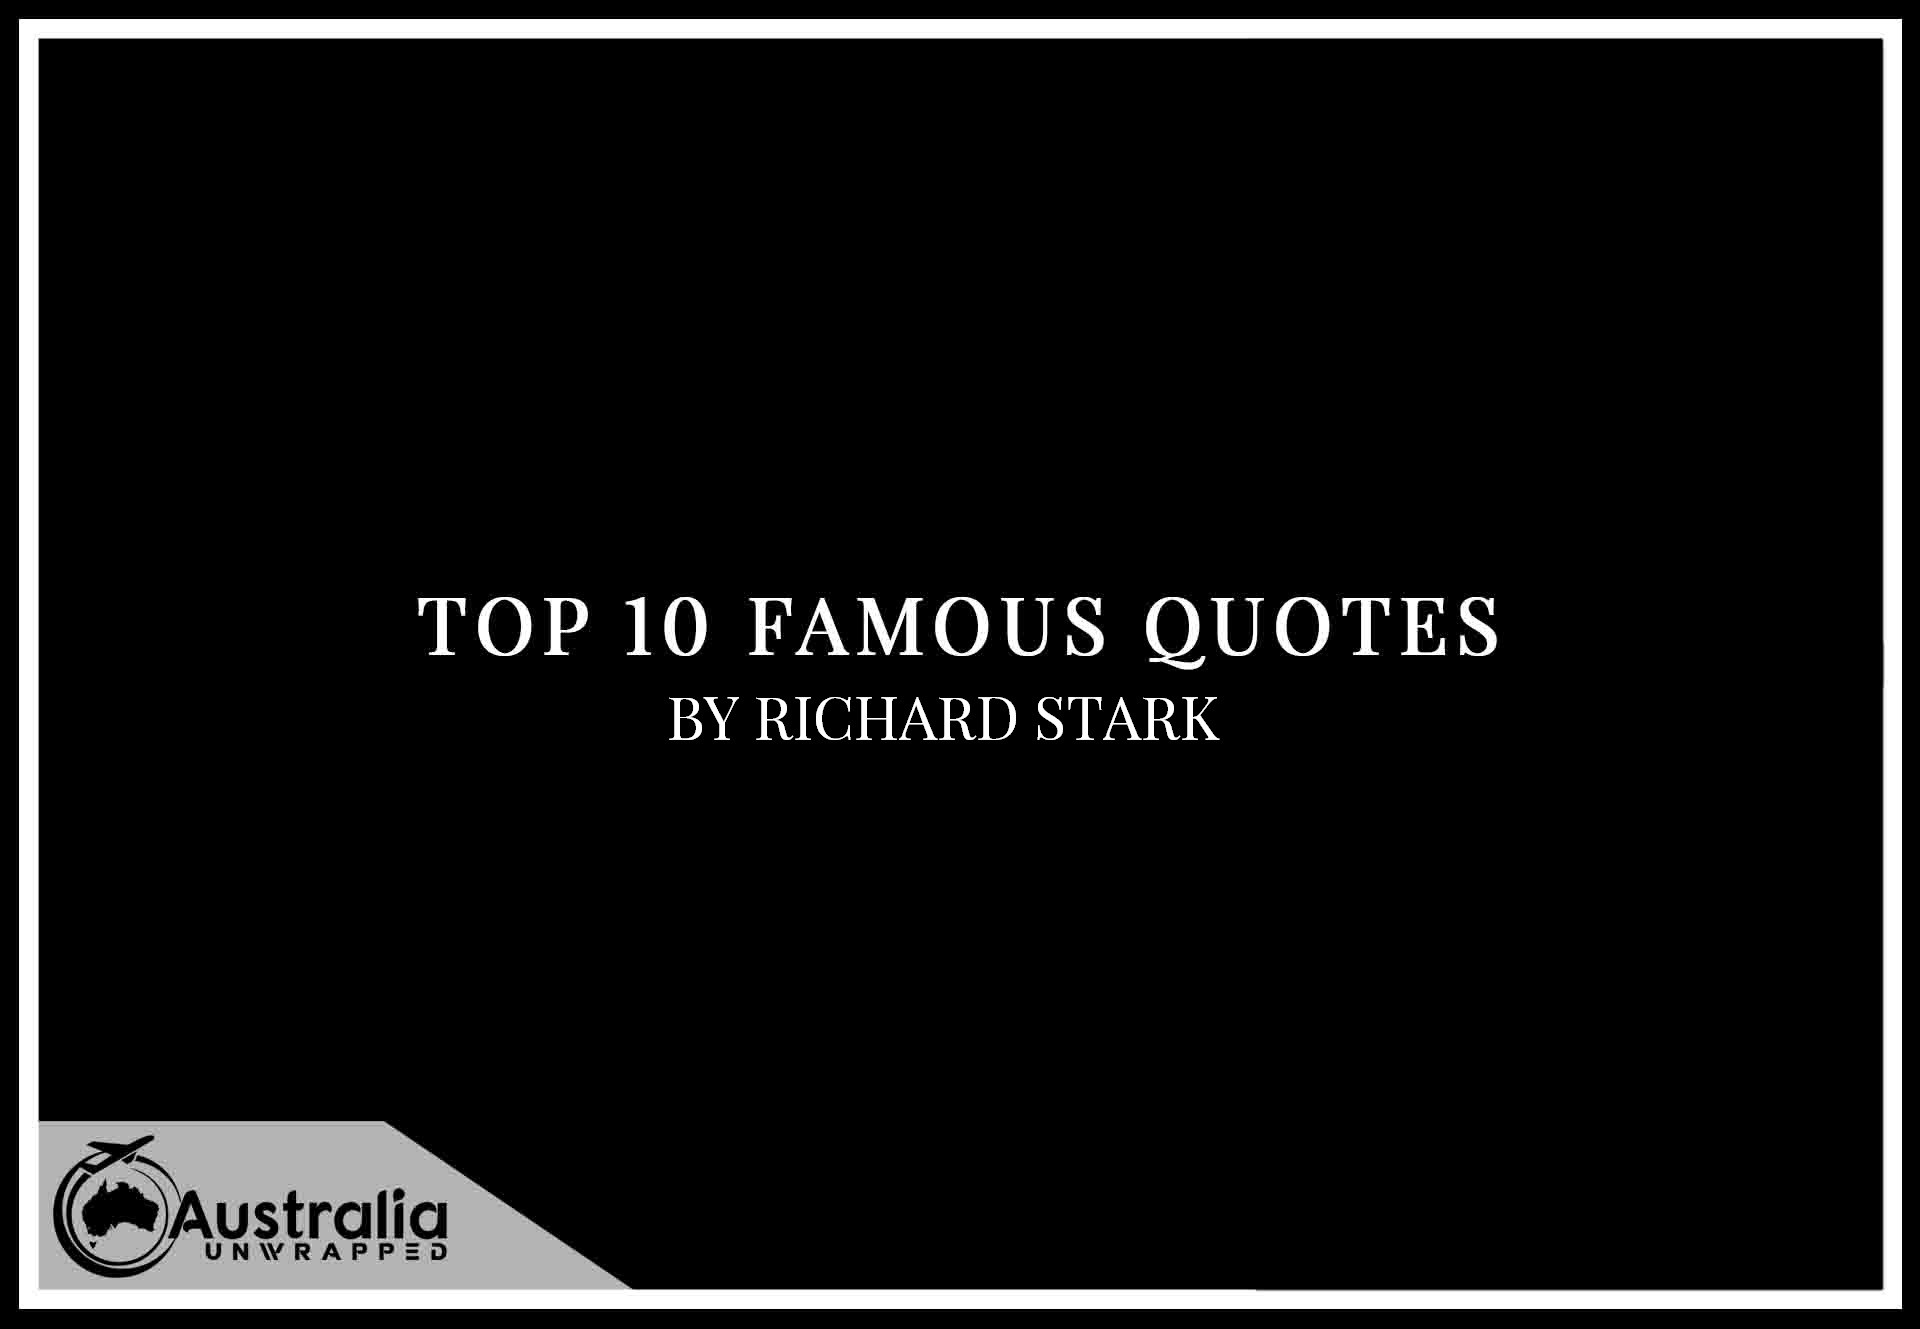 Top 10 Famous Quotes by Author Richard Stark